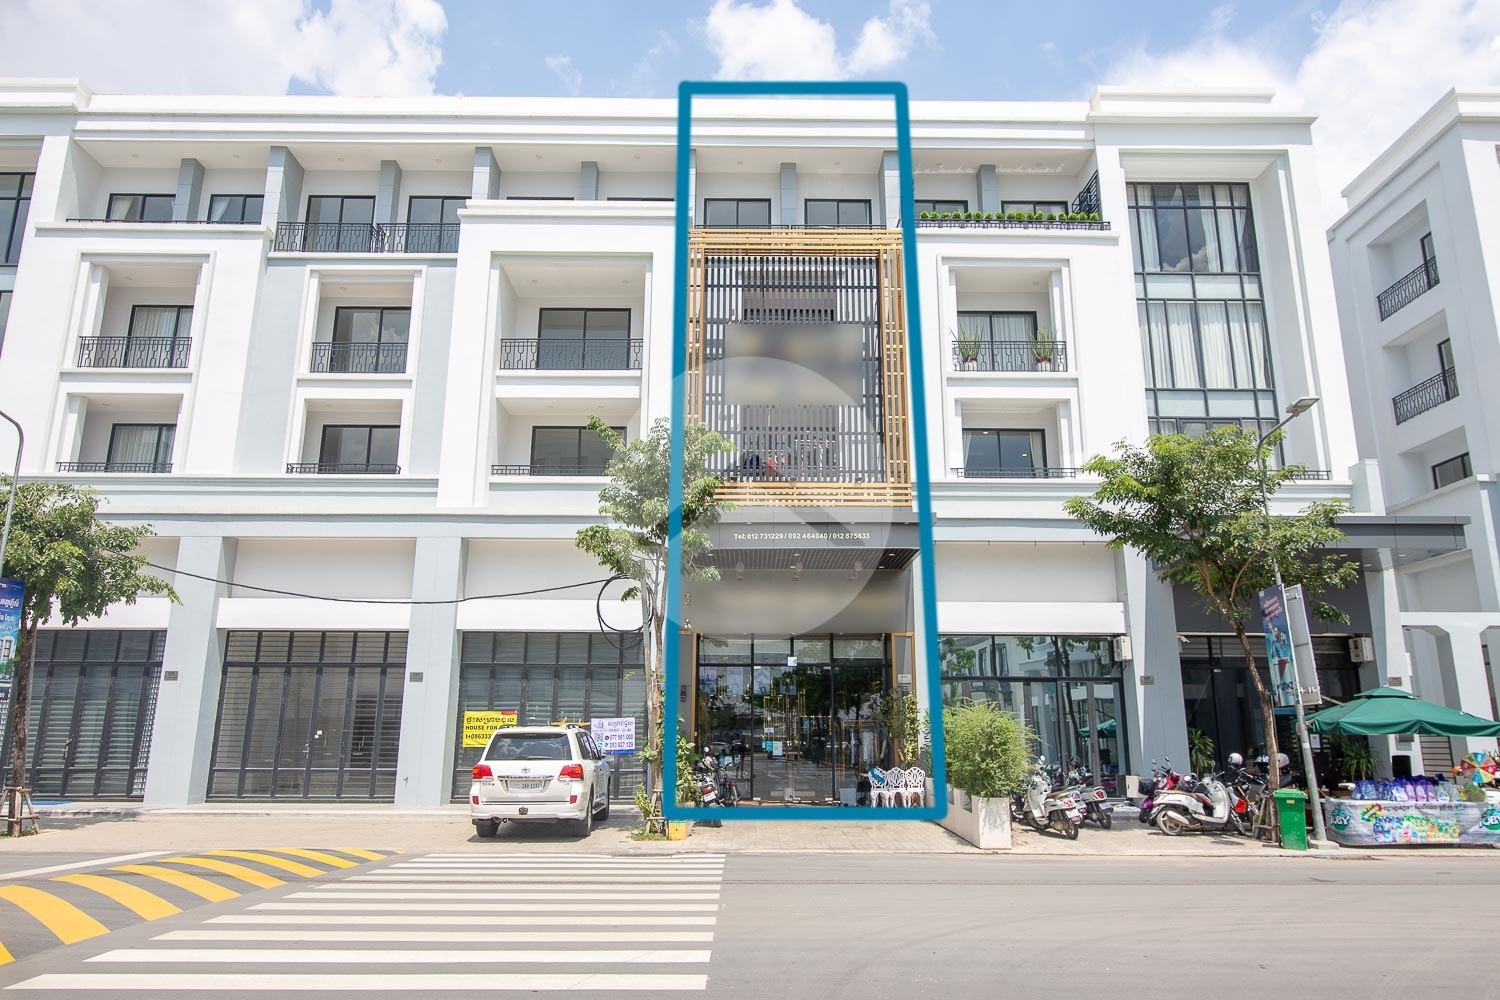 4 Bedroom Shophouse For Sale - Mean Chey, Phnom Penh